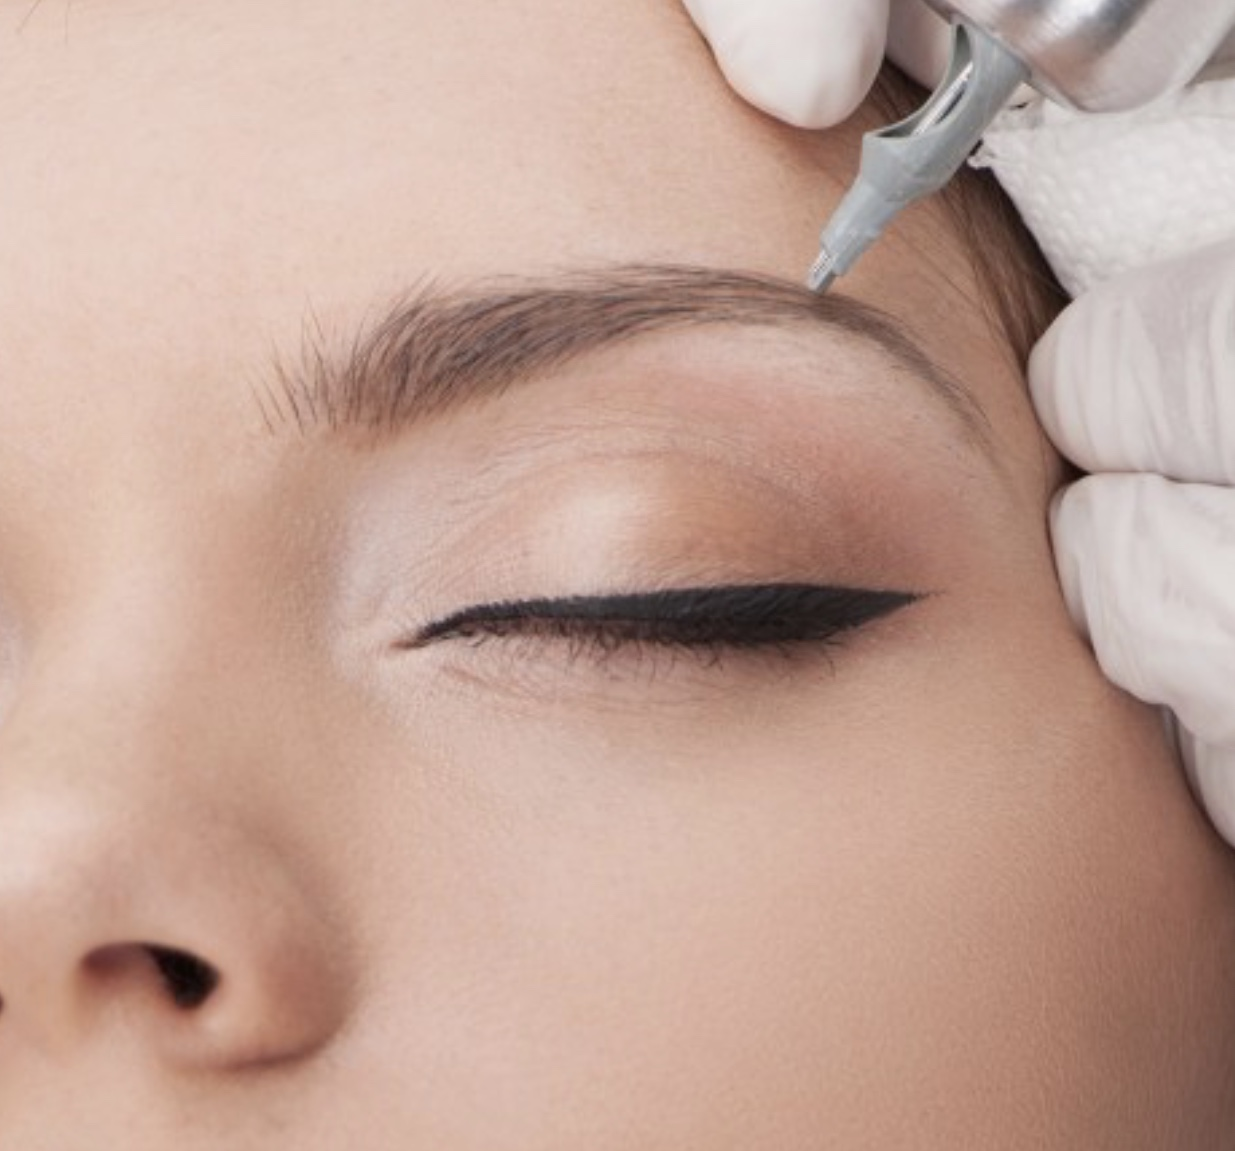 Dashe Brows - Permanent Makeup, Permanent Brows